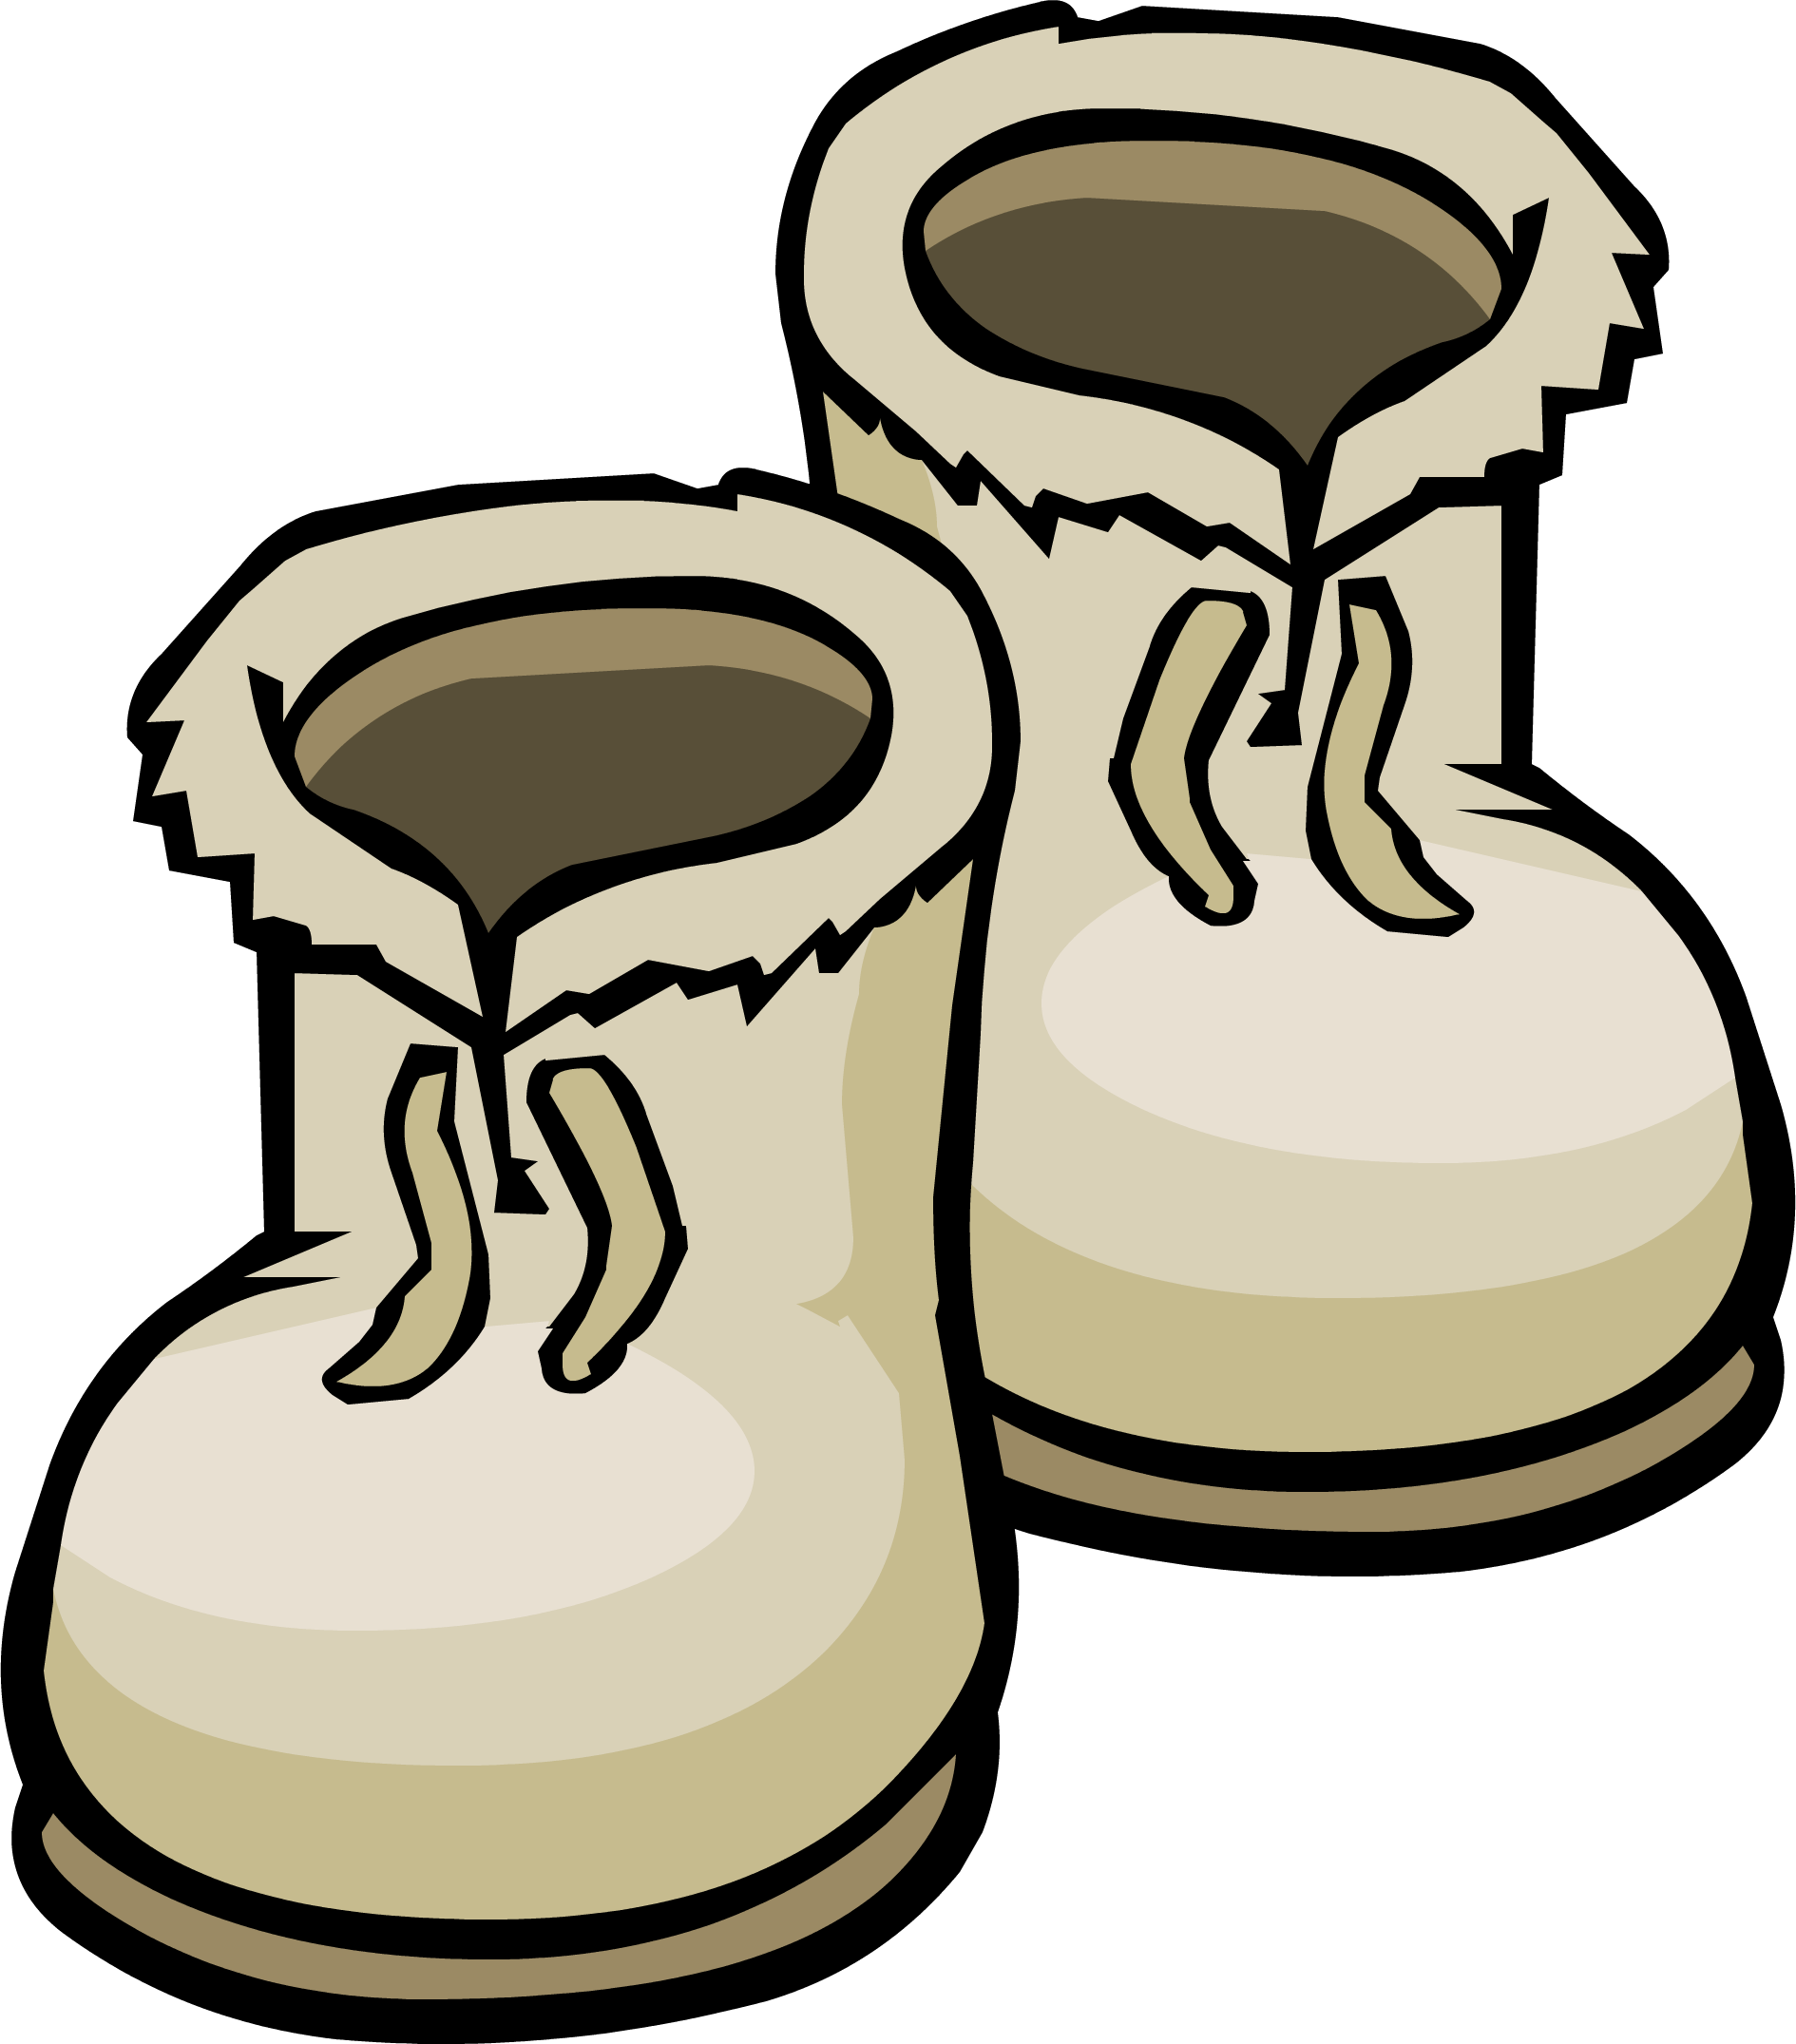 Free Snow Boots Cliparts, Download Free Clip Art, Free Clip Art on ... clipart transparent download